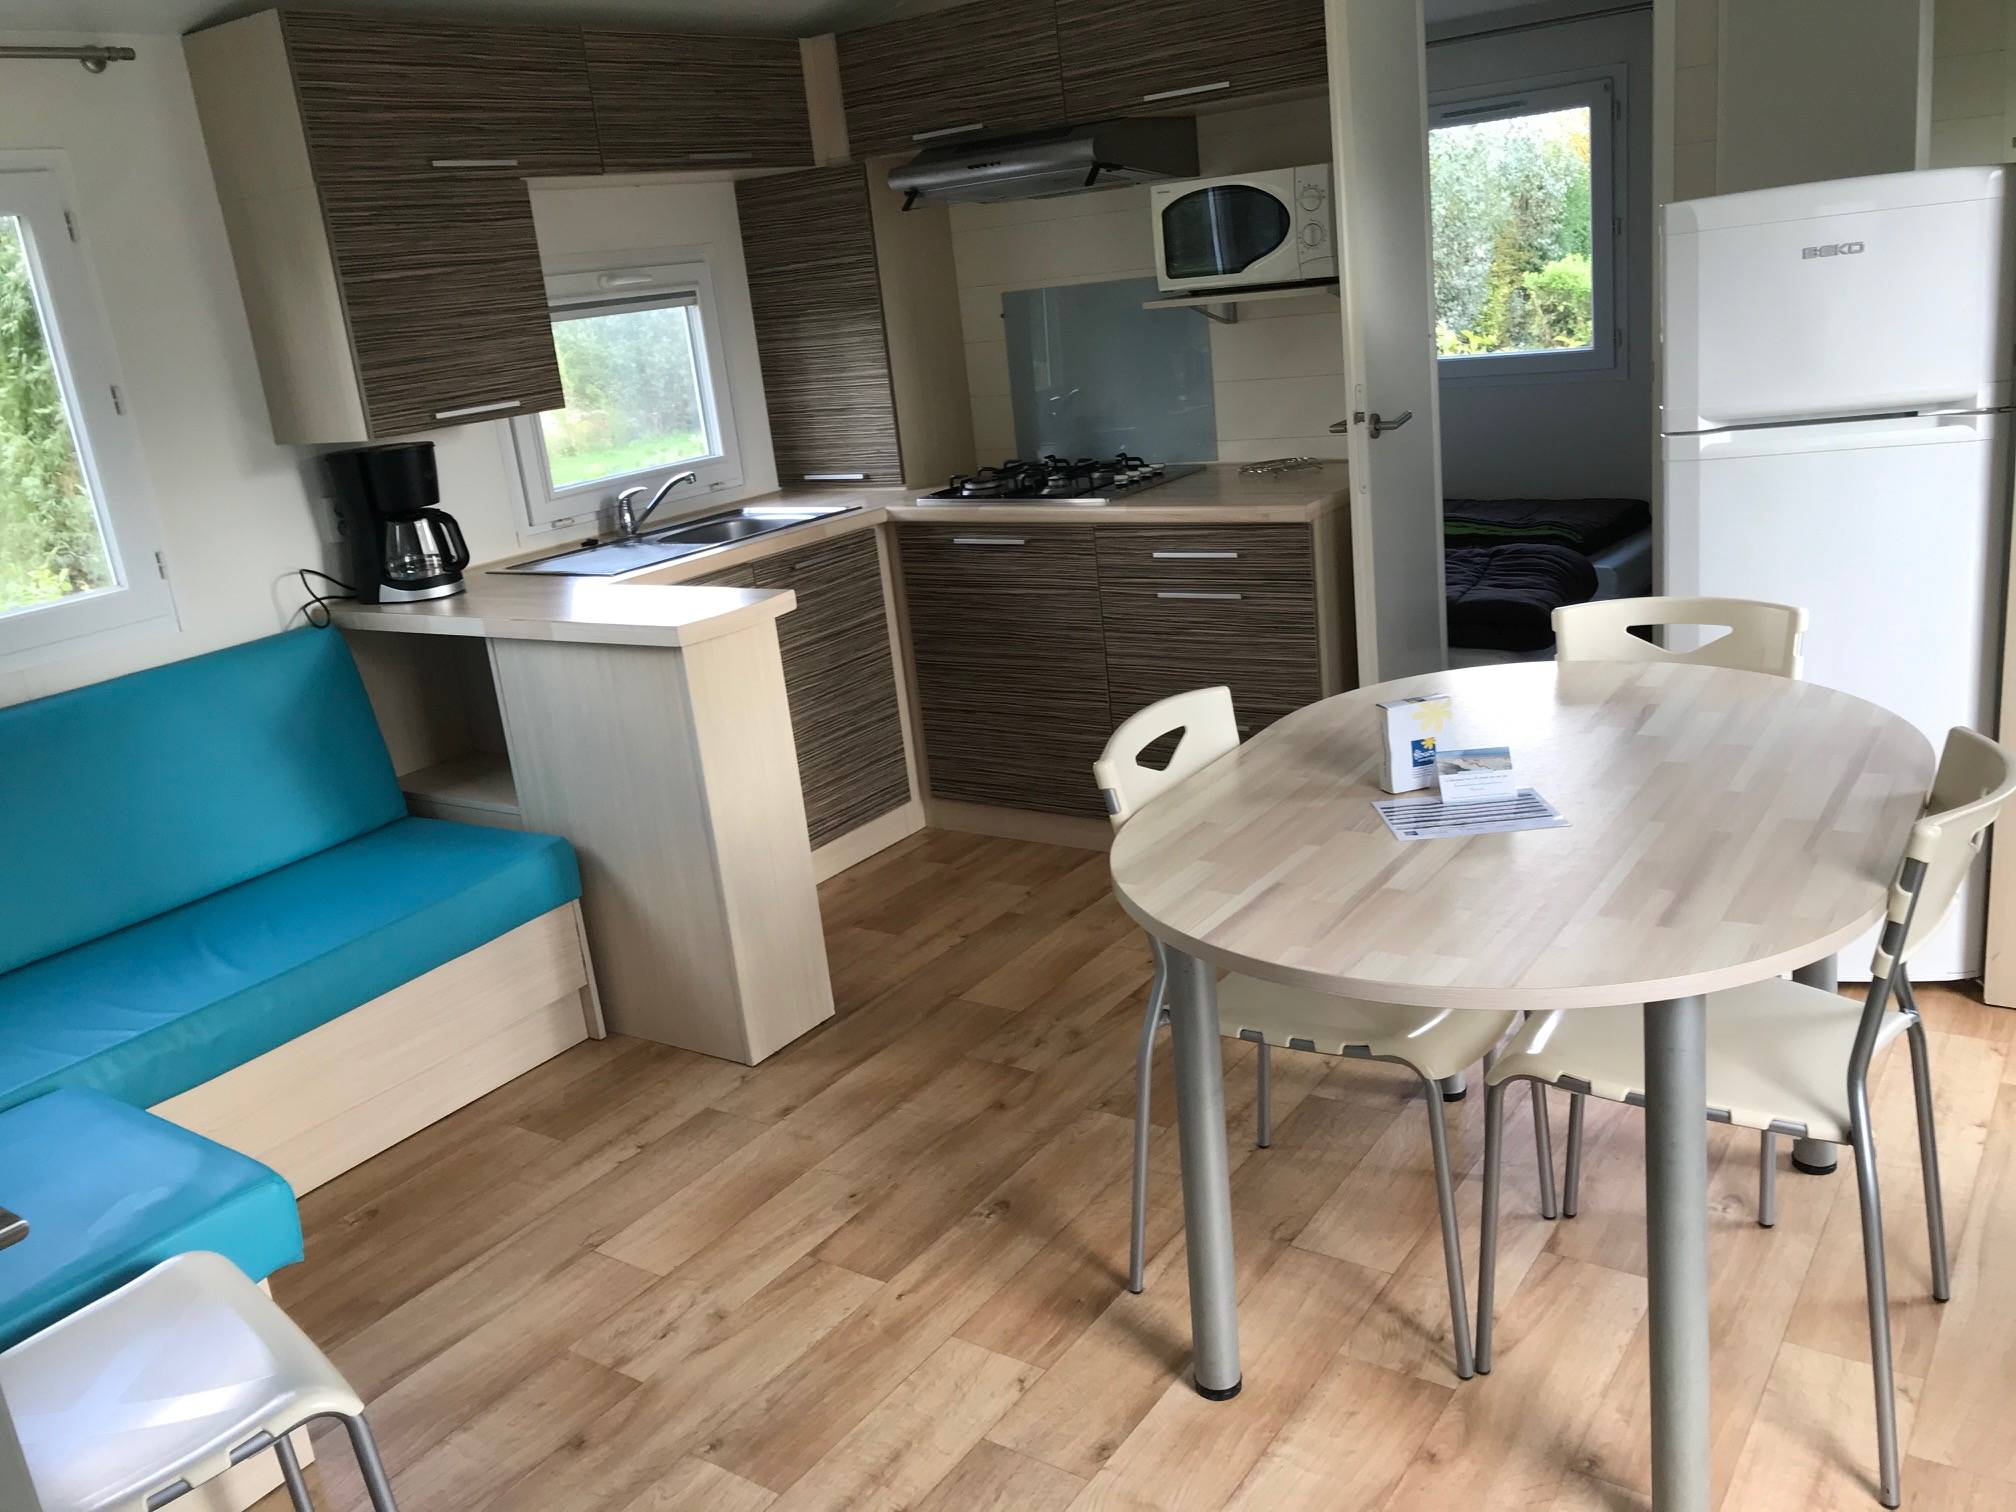 2 Bedrooms mobil-home